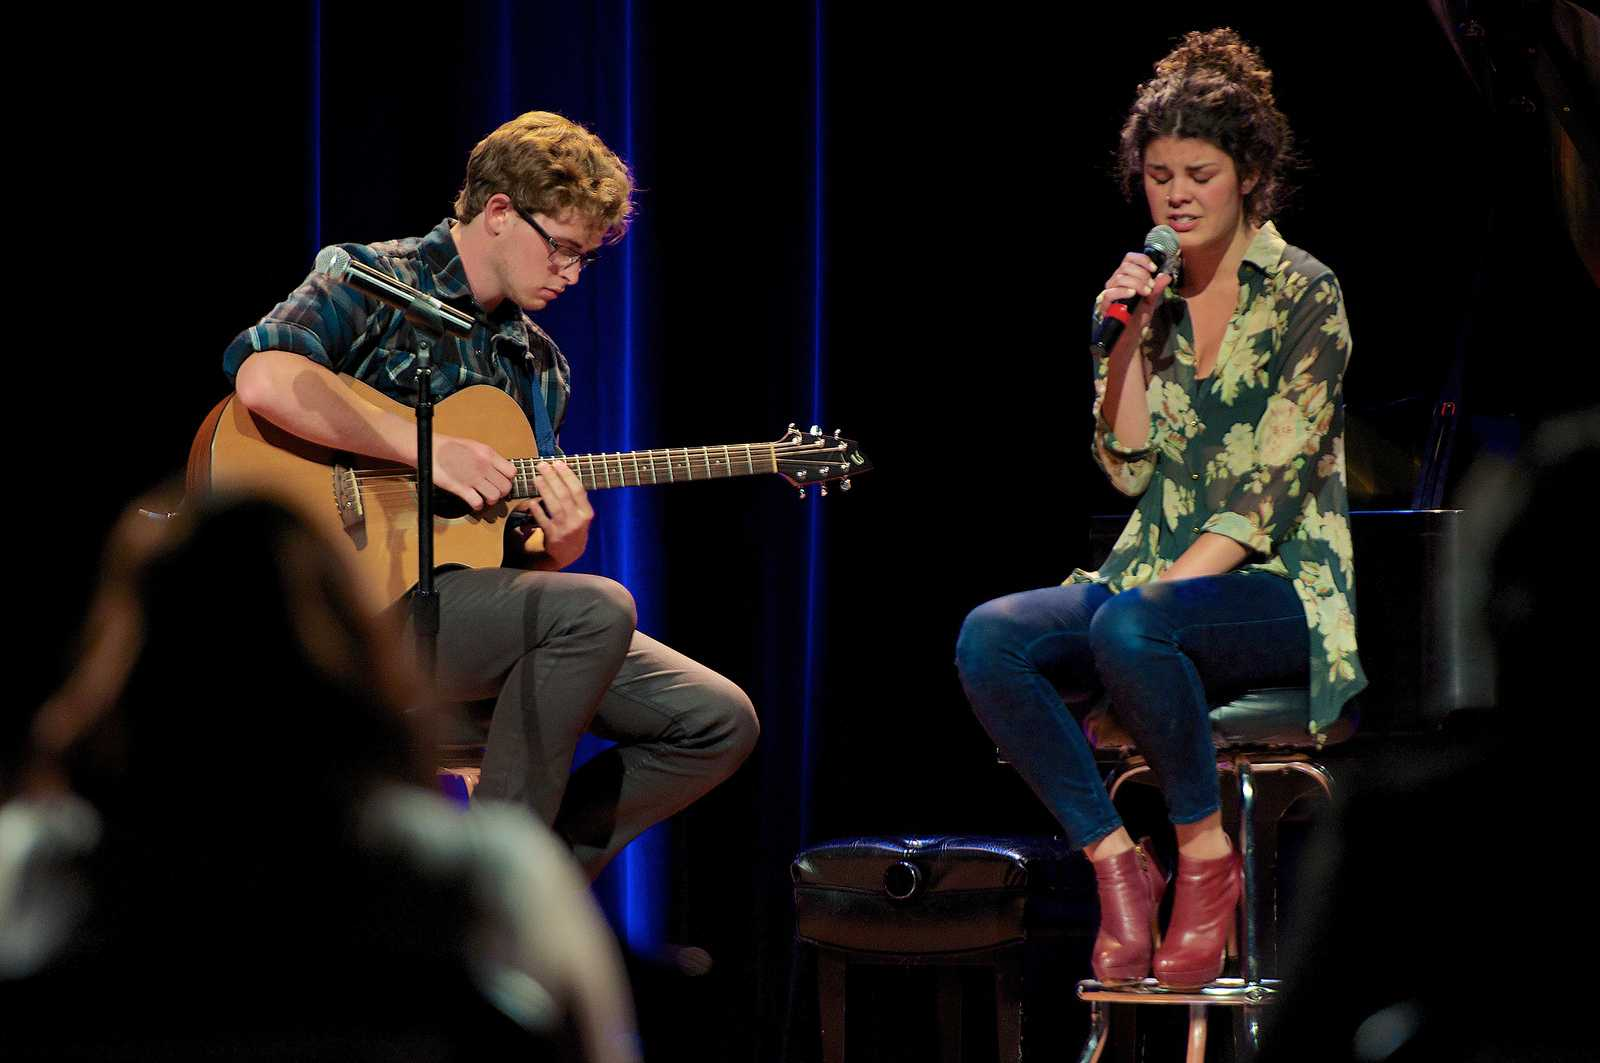 Gabi Cavassa and Sean Thompson open the show with their rendition of